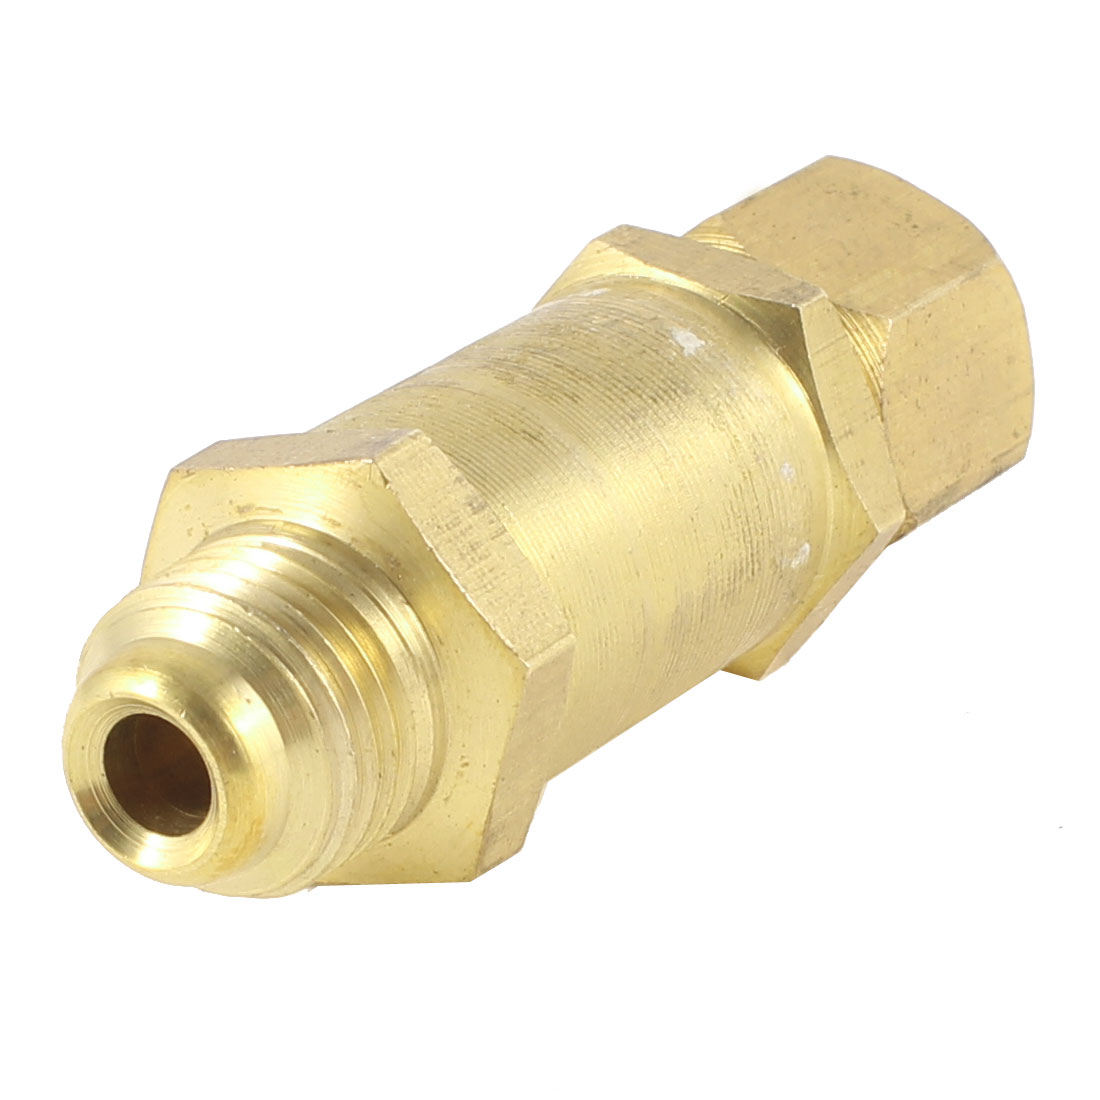 "1/4"" NPT Welding Regulator Mount Oxygen Flashback Arrestor Gold Tone"